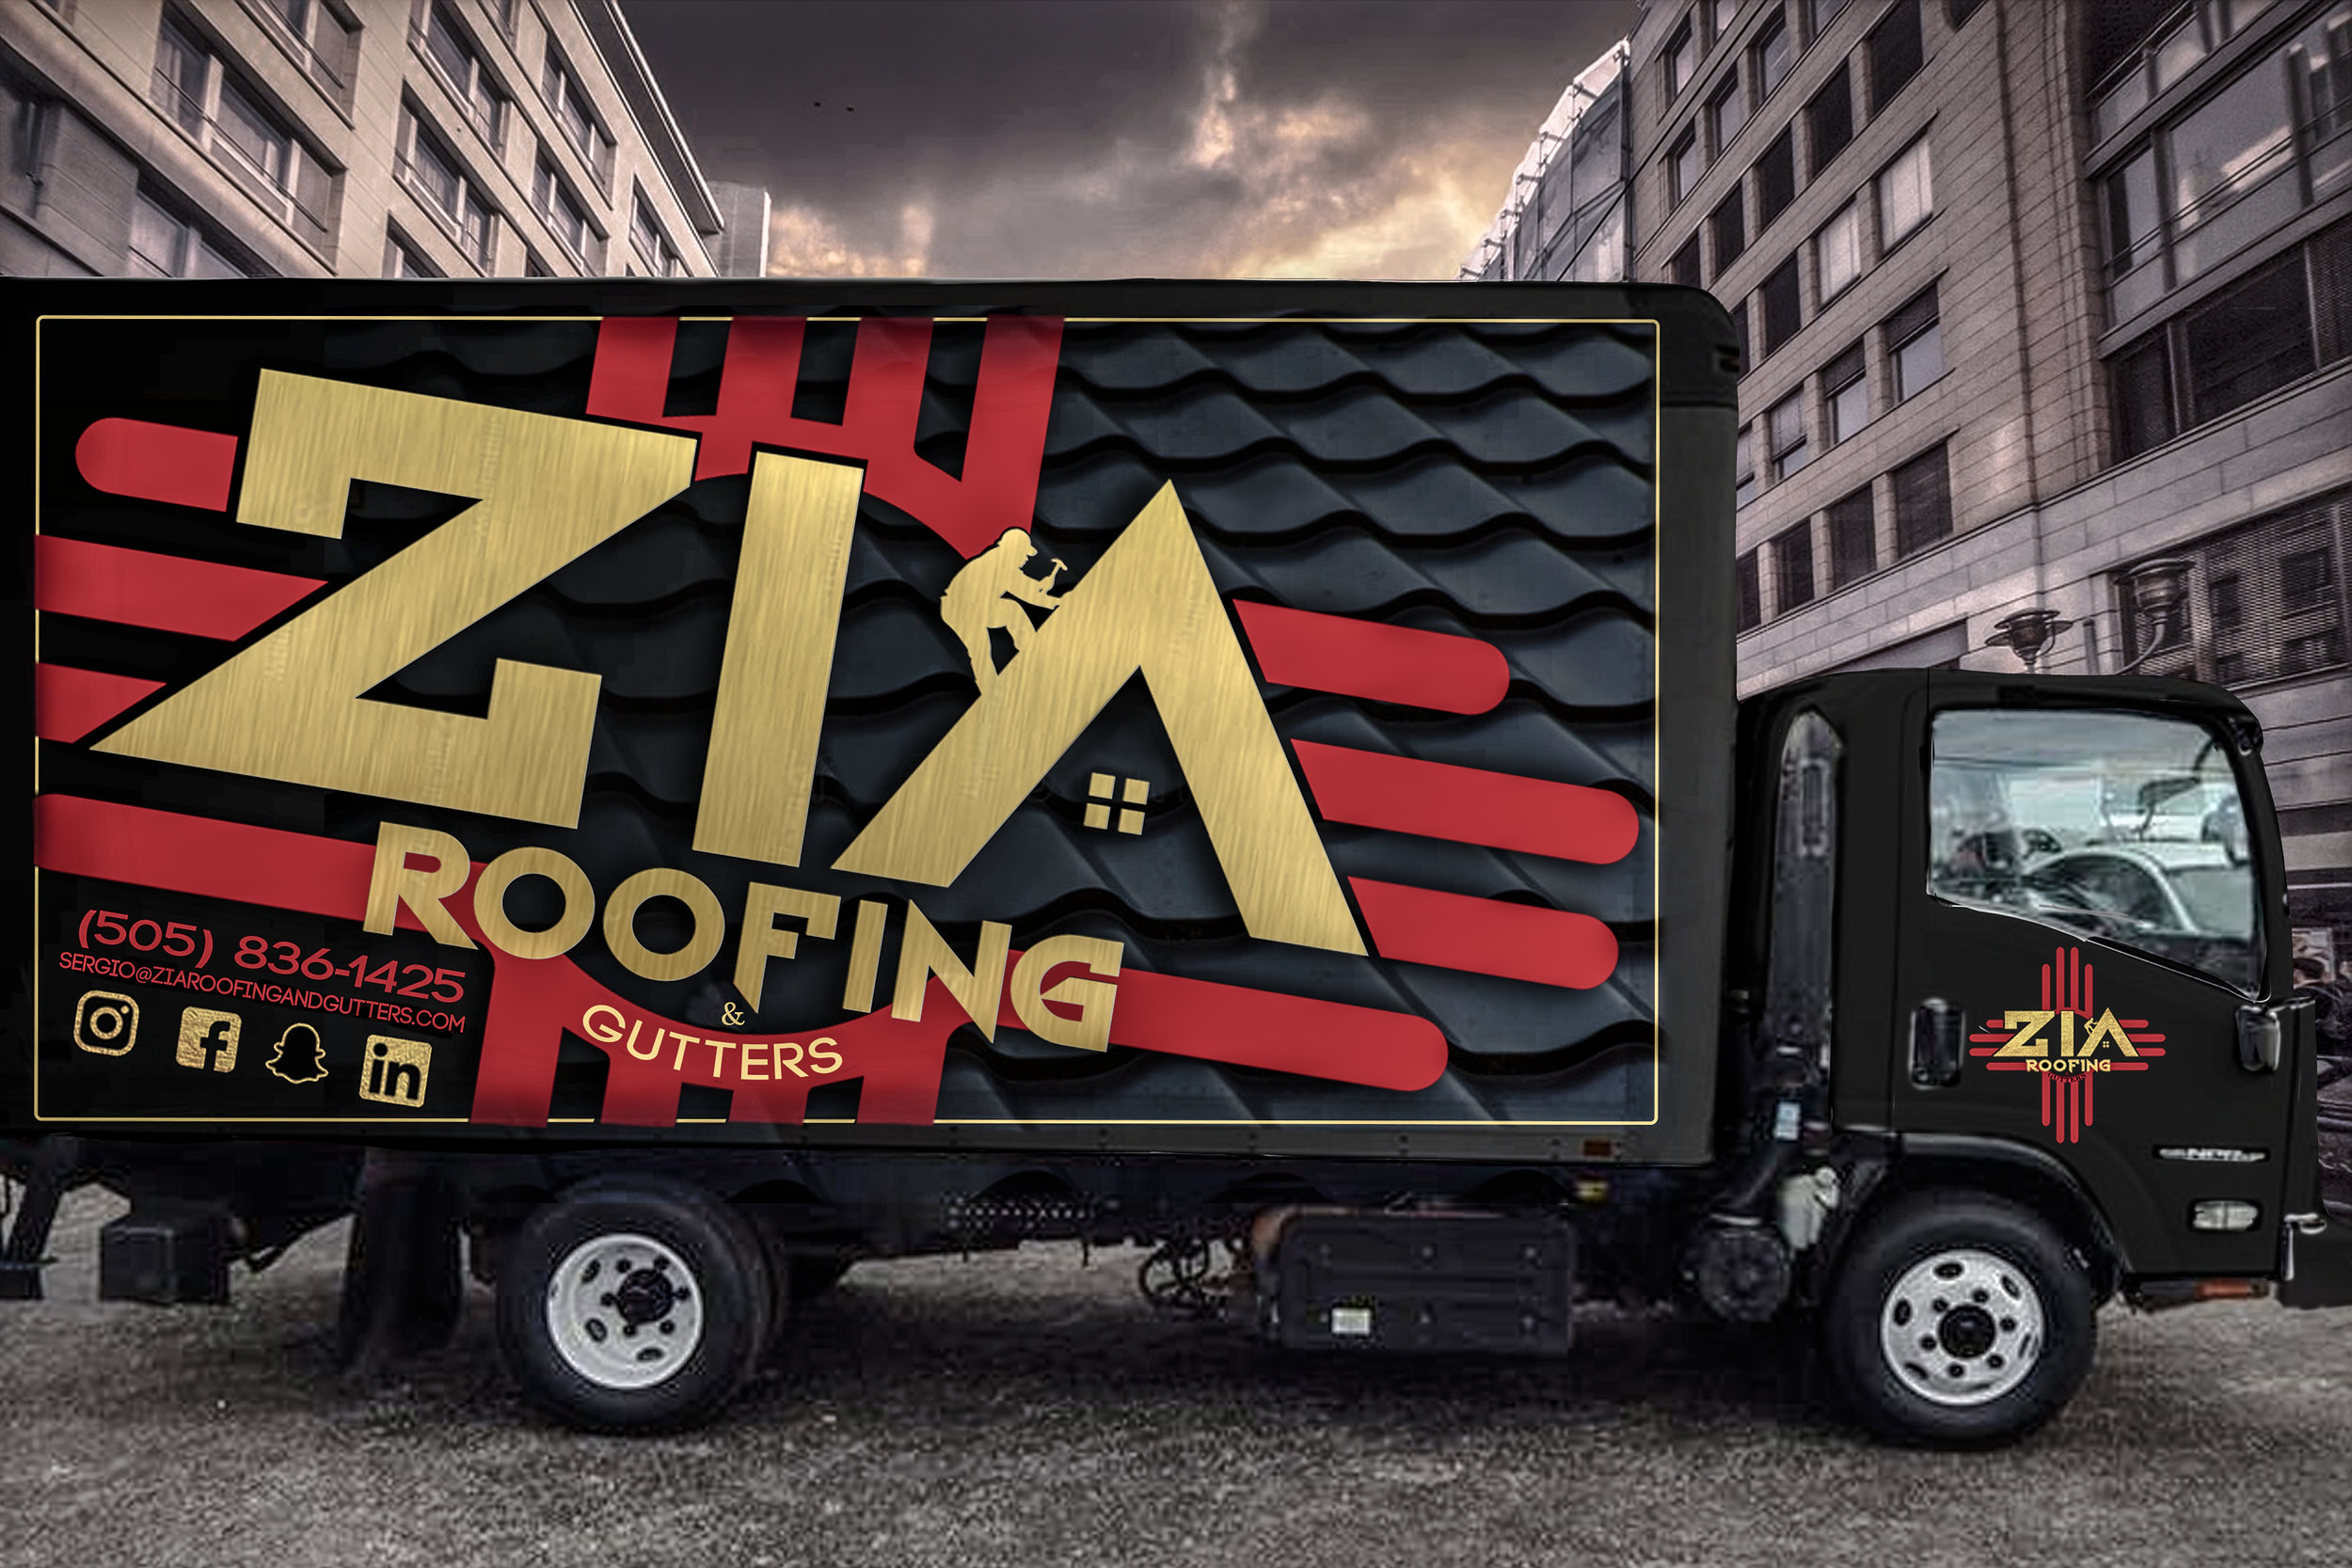 Contact Zia Roofing and Gutters for all of your roofing needs; new roofs, damaged roofs, repairs, seamless gutters and upvc gutters as well.